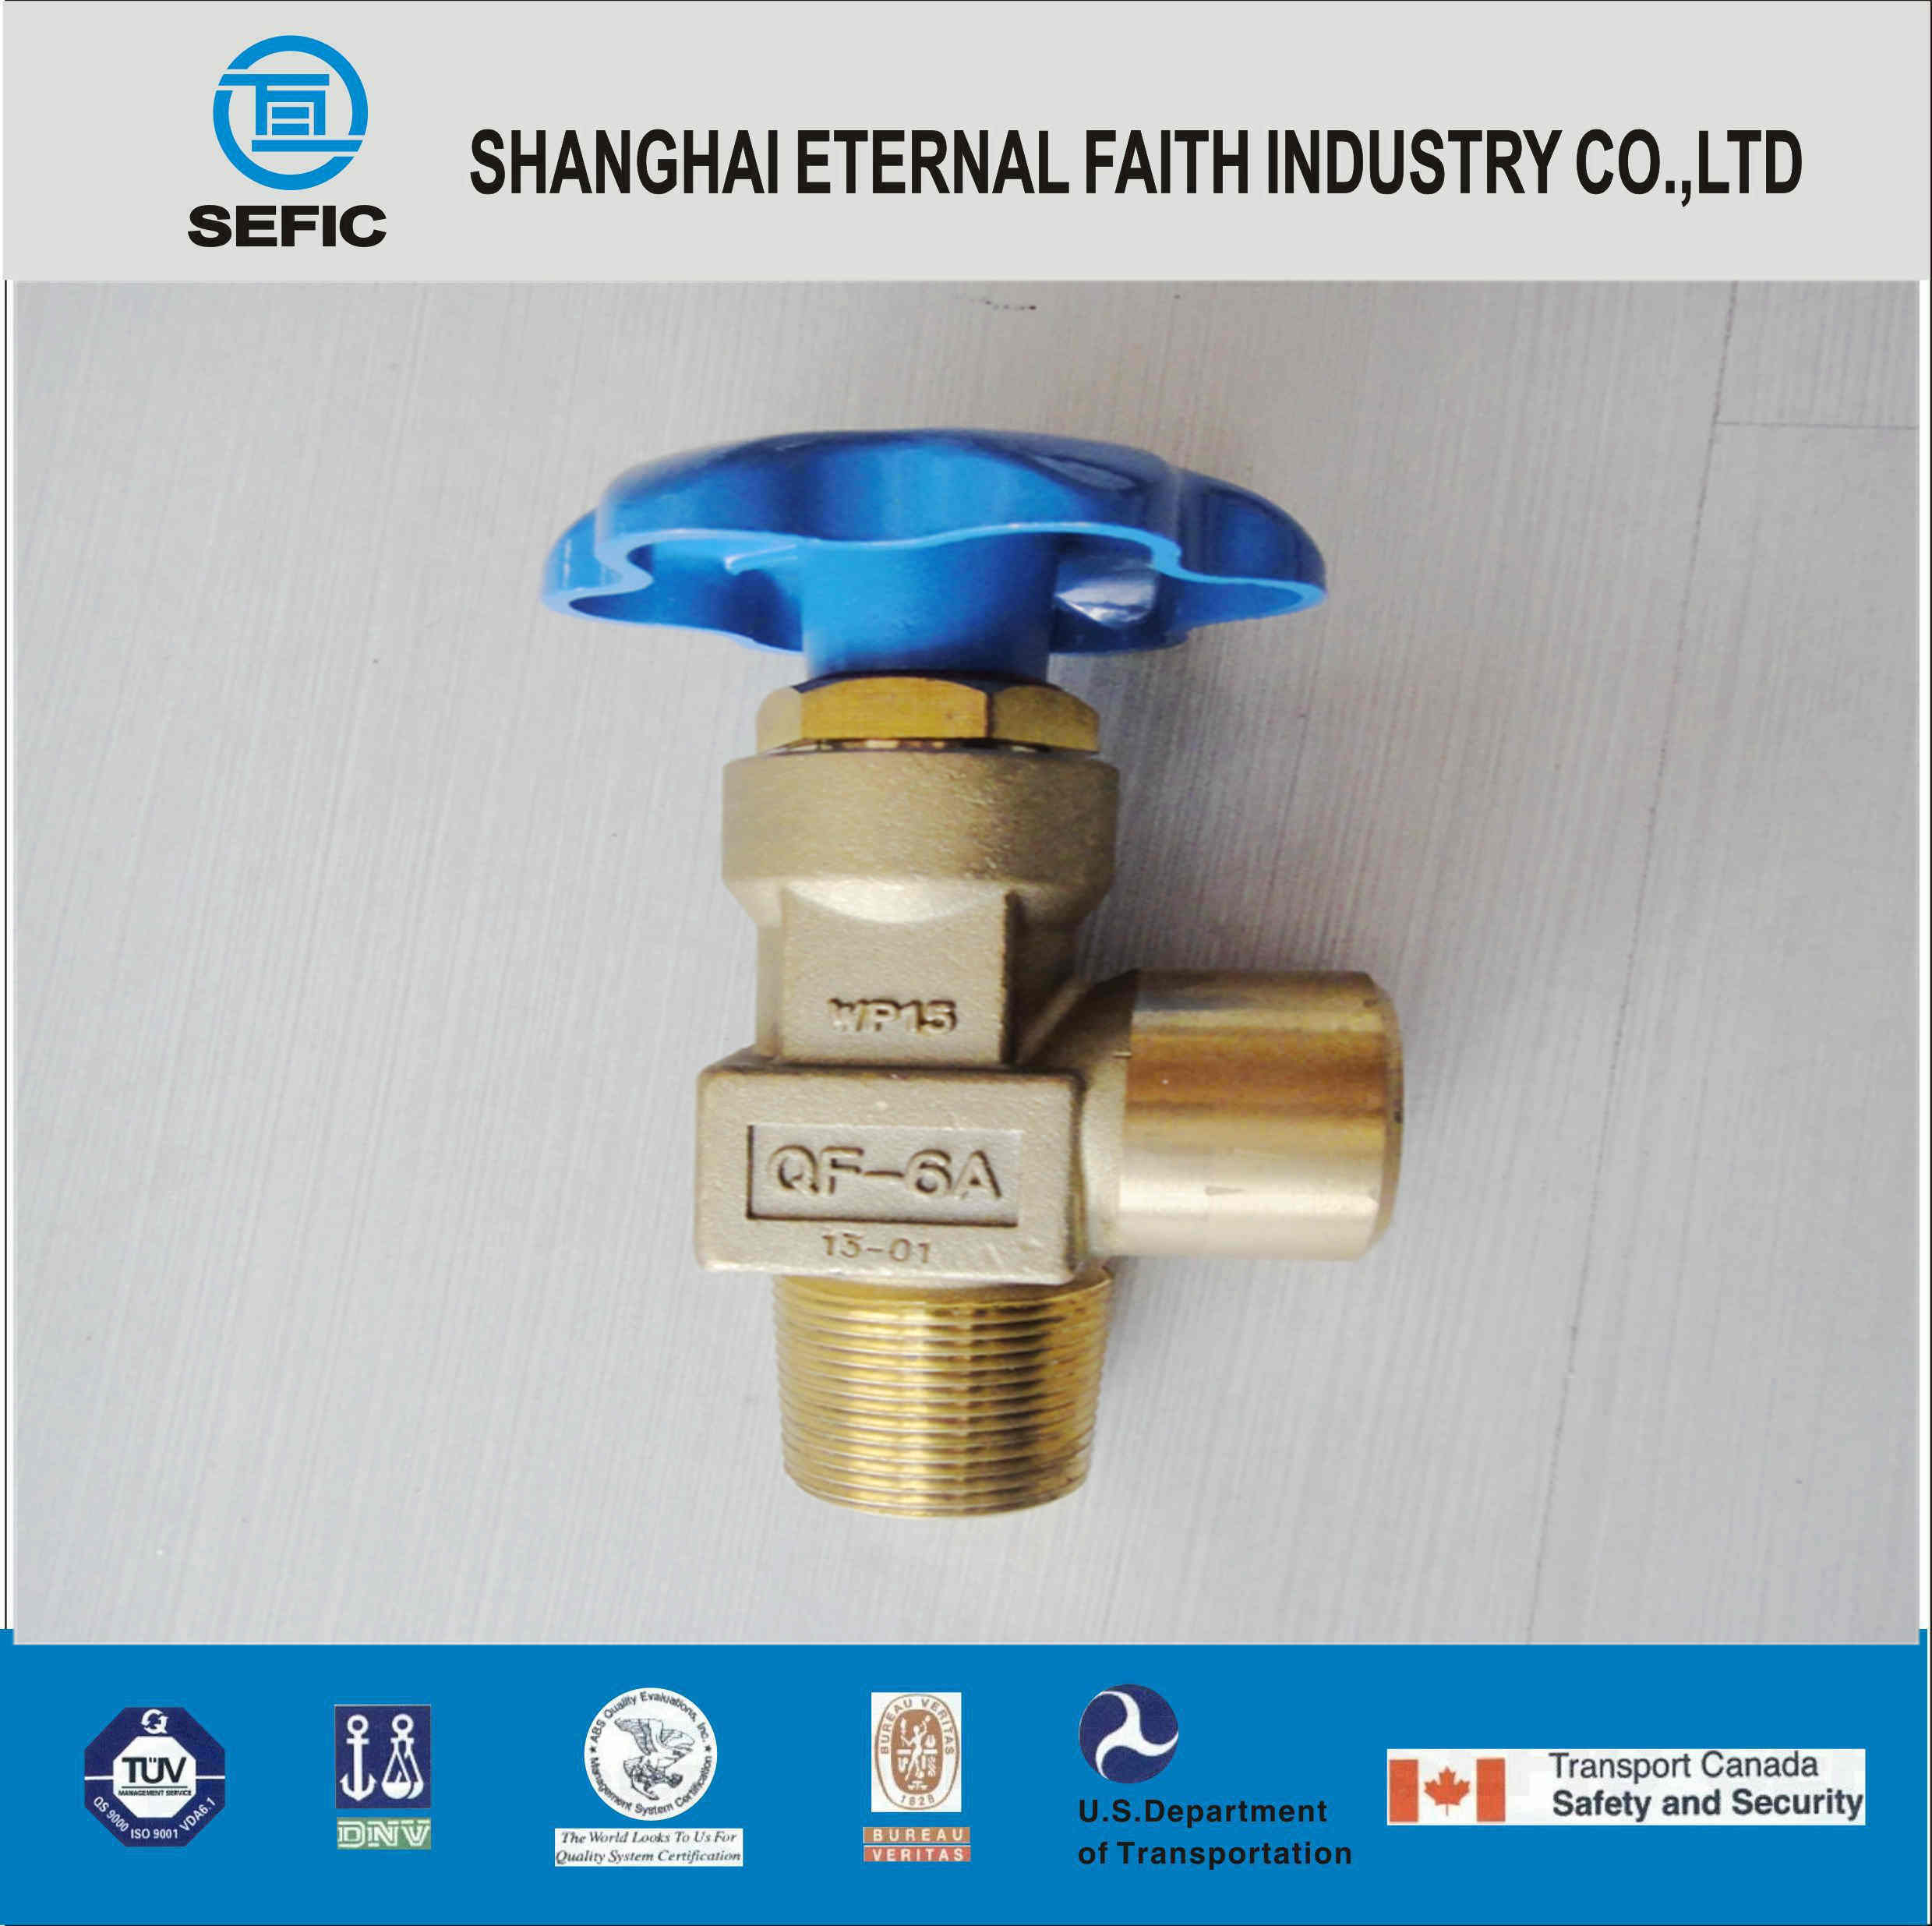 China qf 6a medical gas cylinder valve photos pictures made in qf 6a medical gas cylinder valve 1betcityfo Gallery